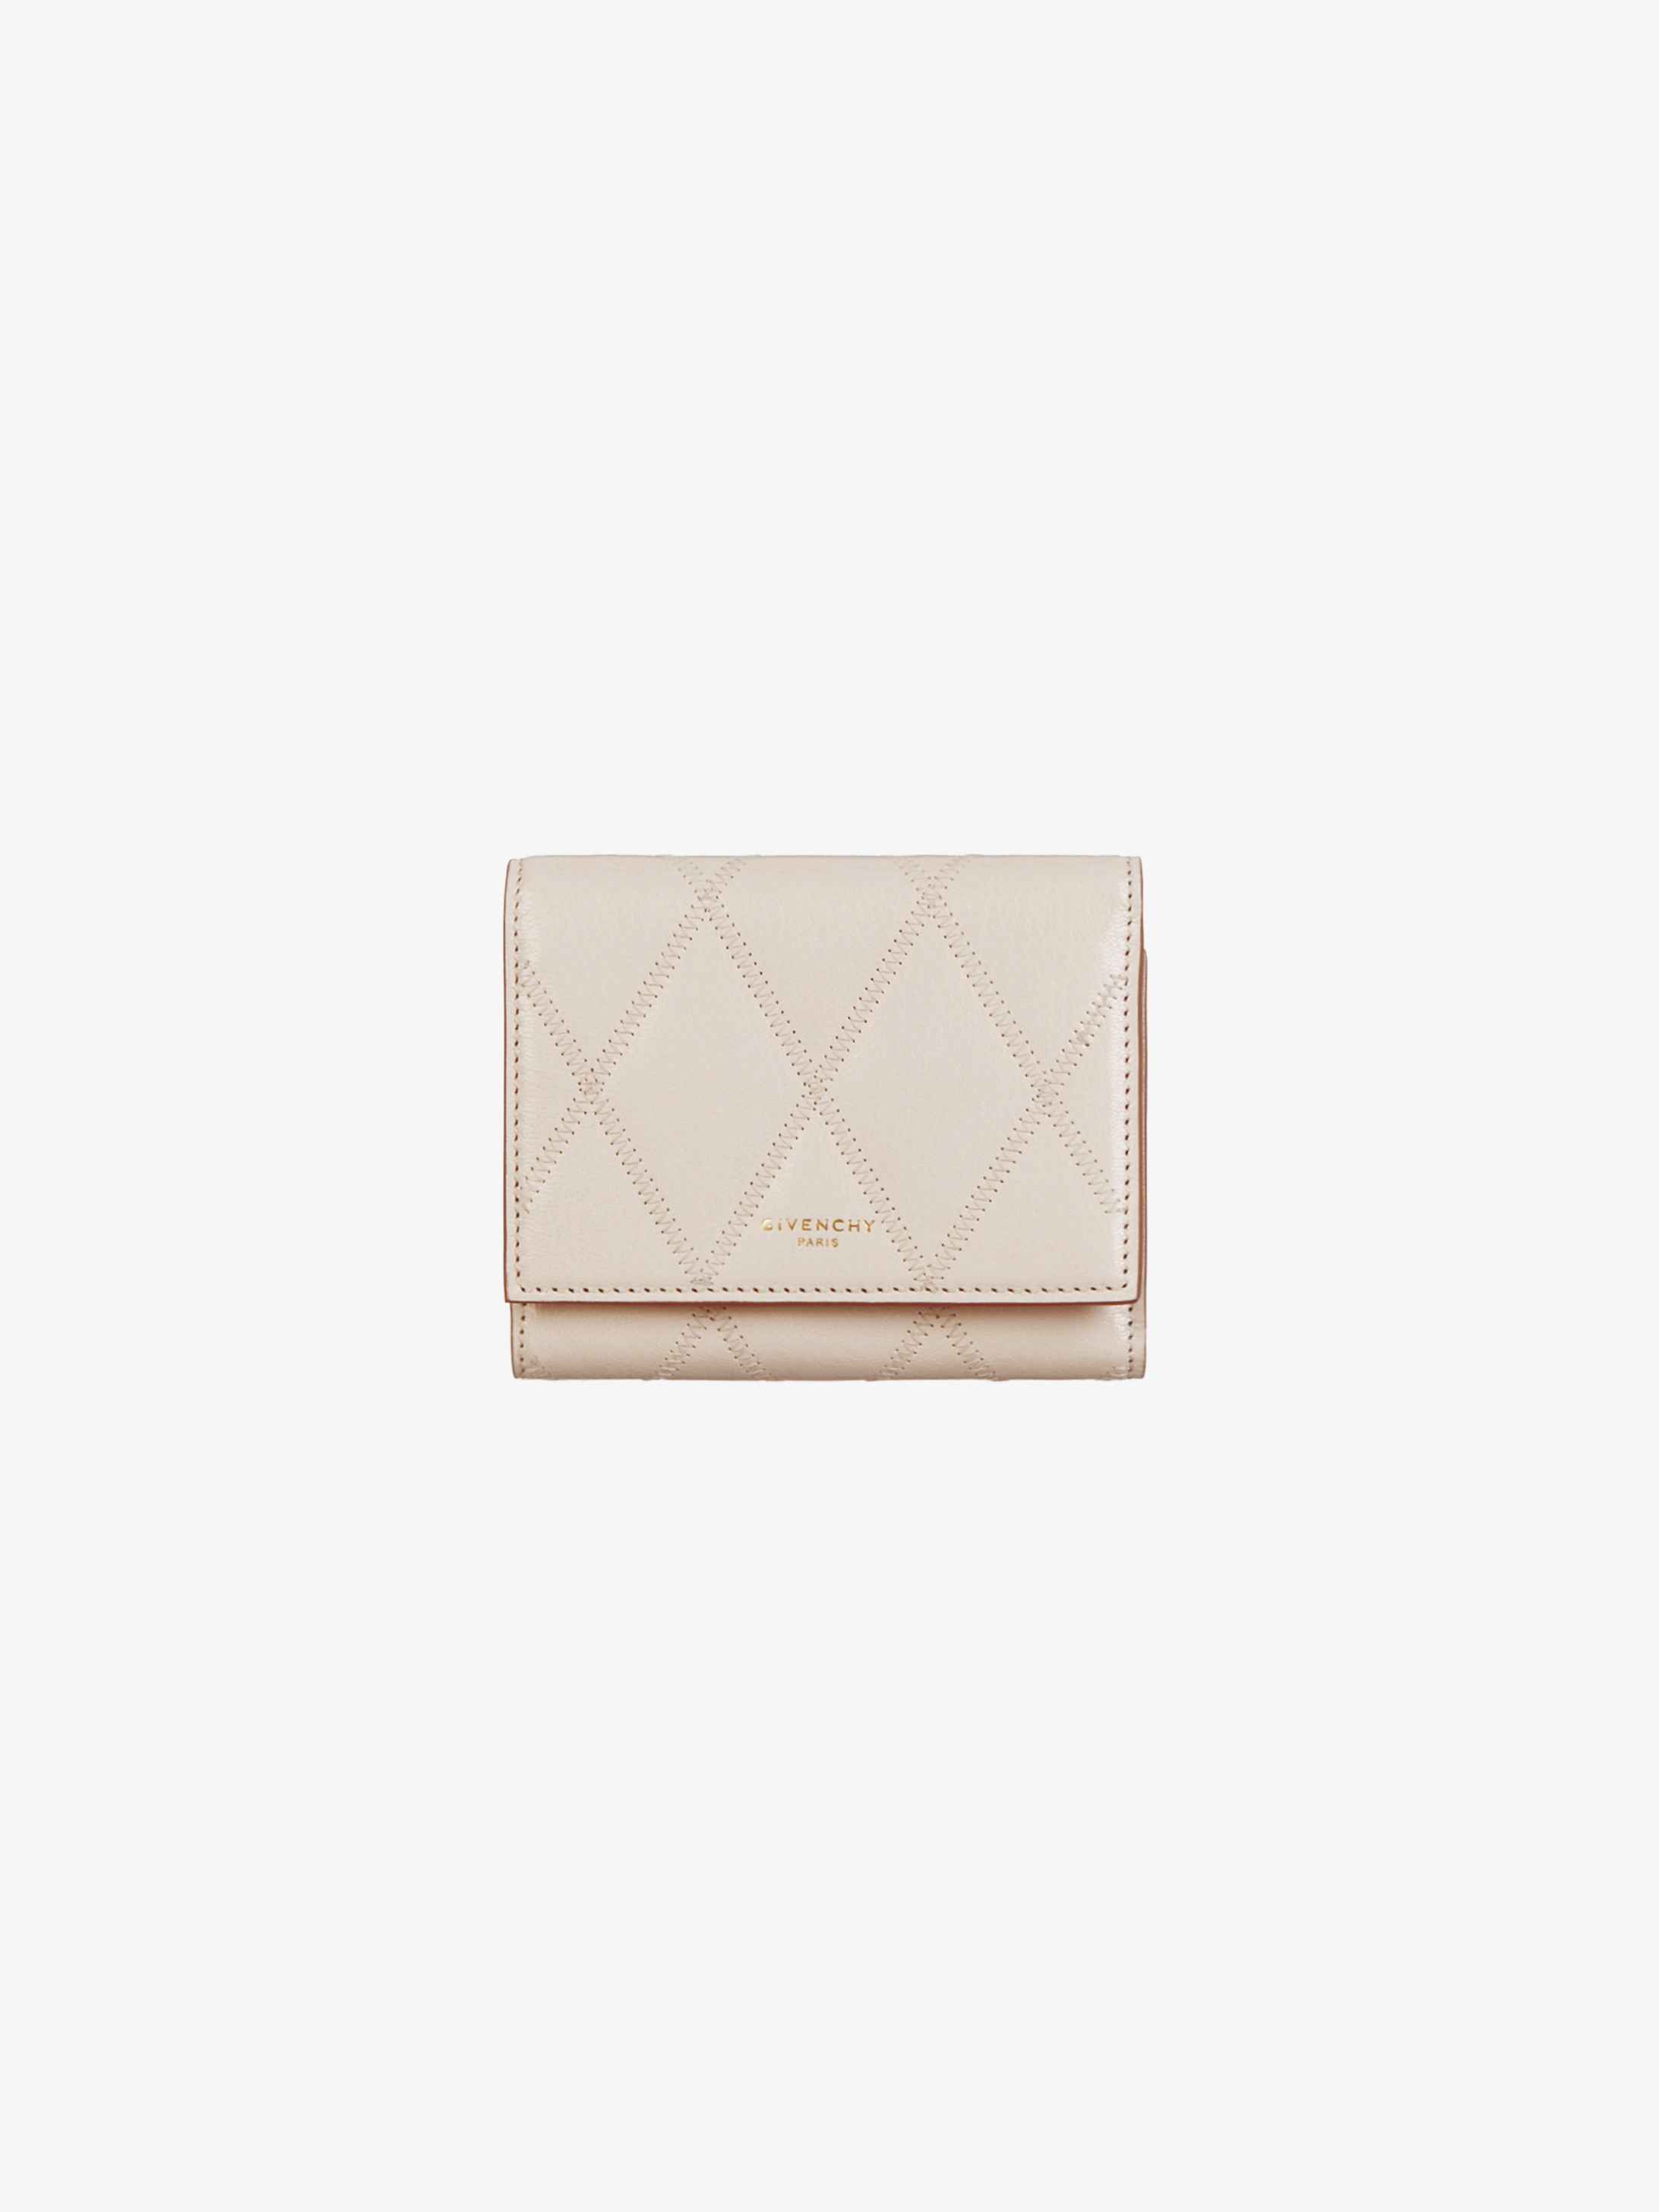 Tri-fold GV3 wallet in diamond quilted leather